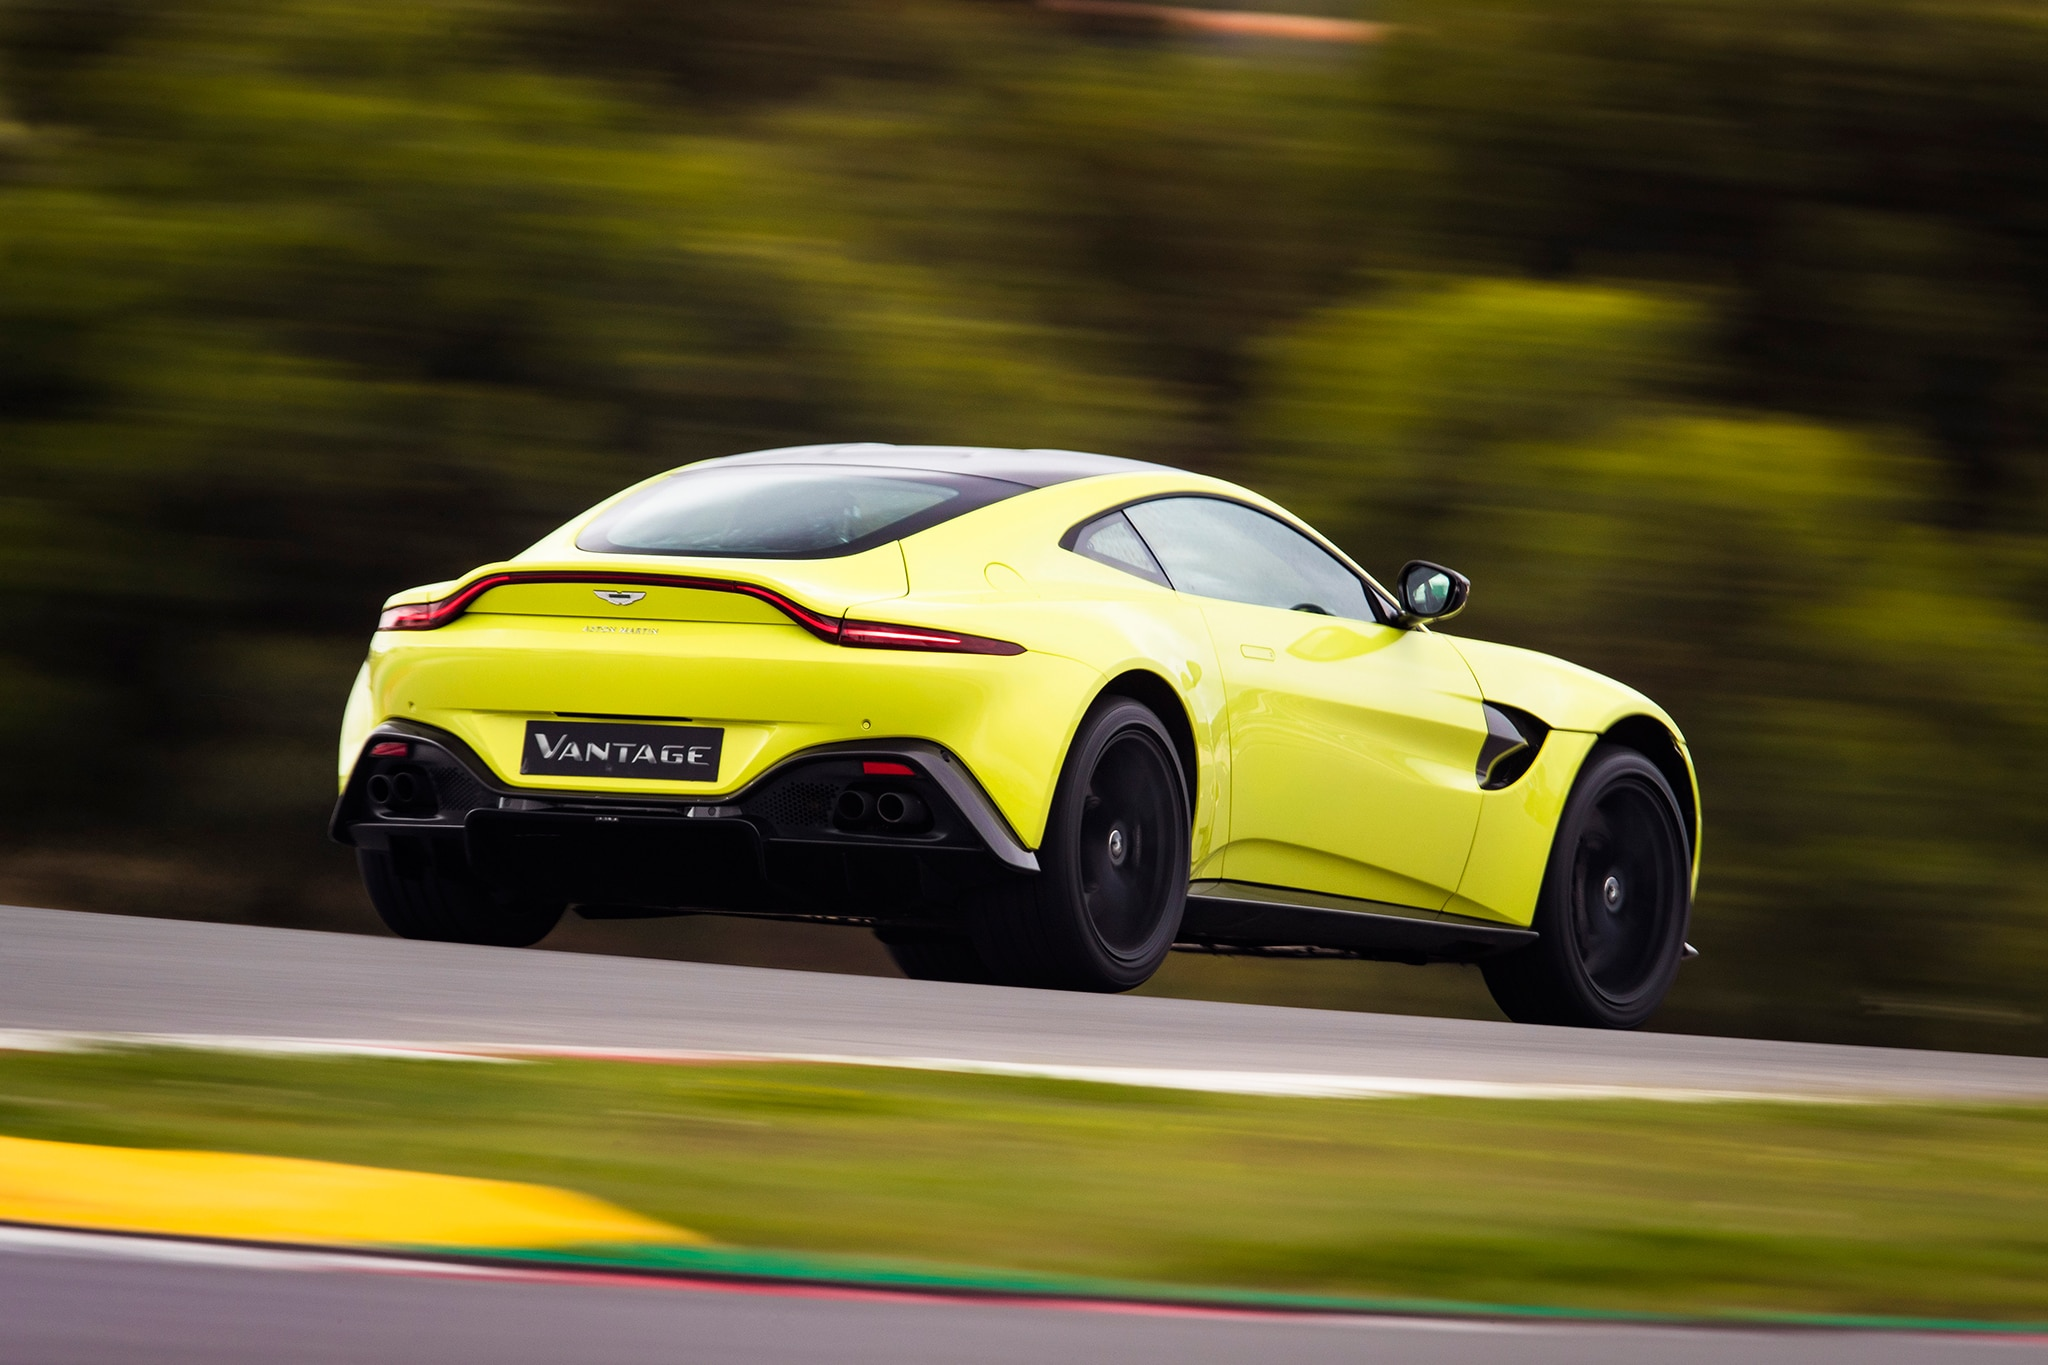 2019 Aston Martin V8 Vantage First Drive Review Automobile Magazine